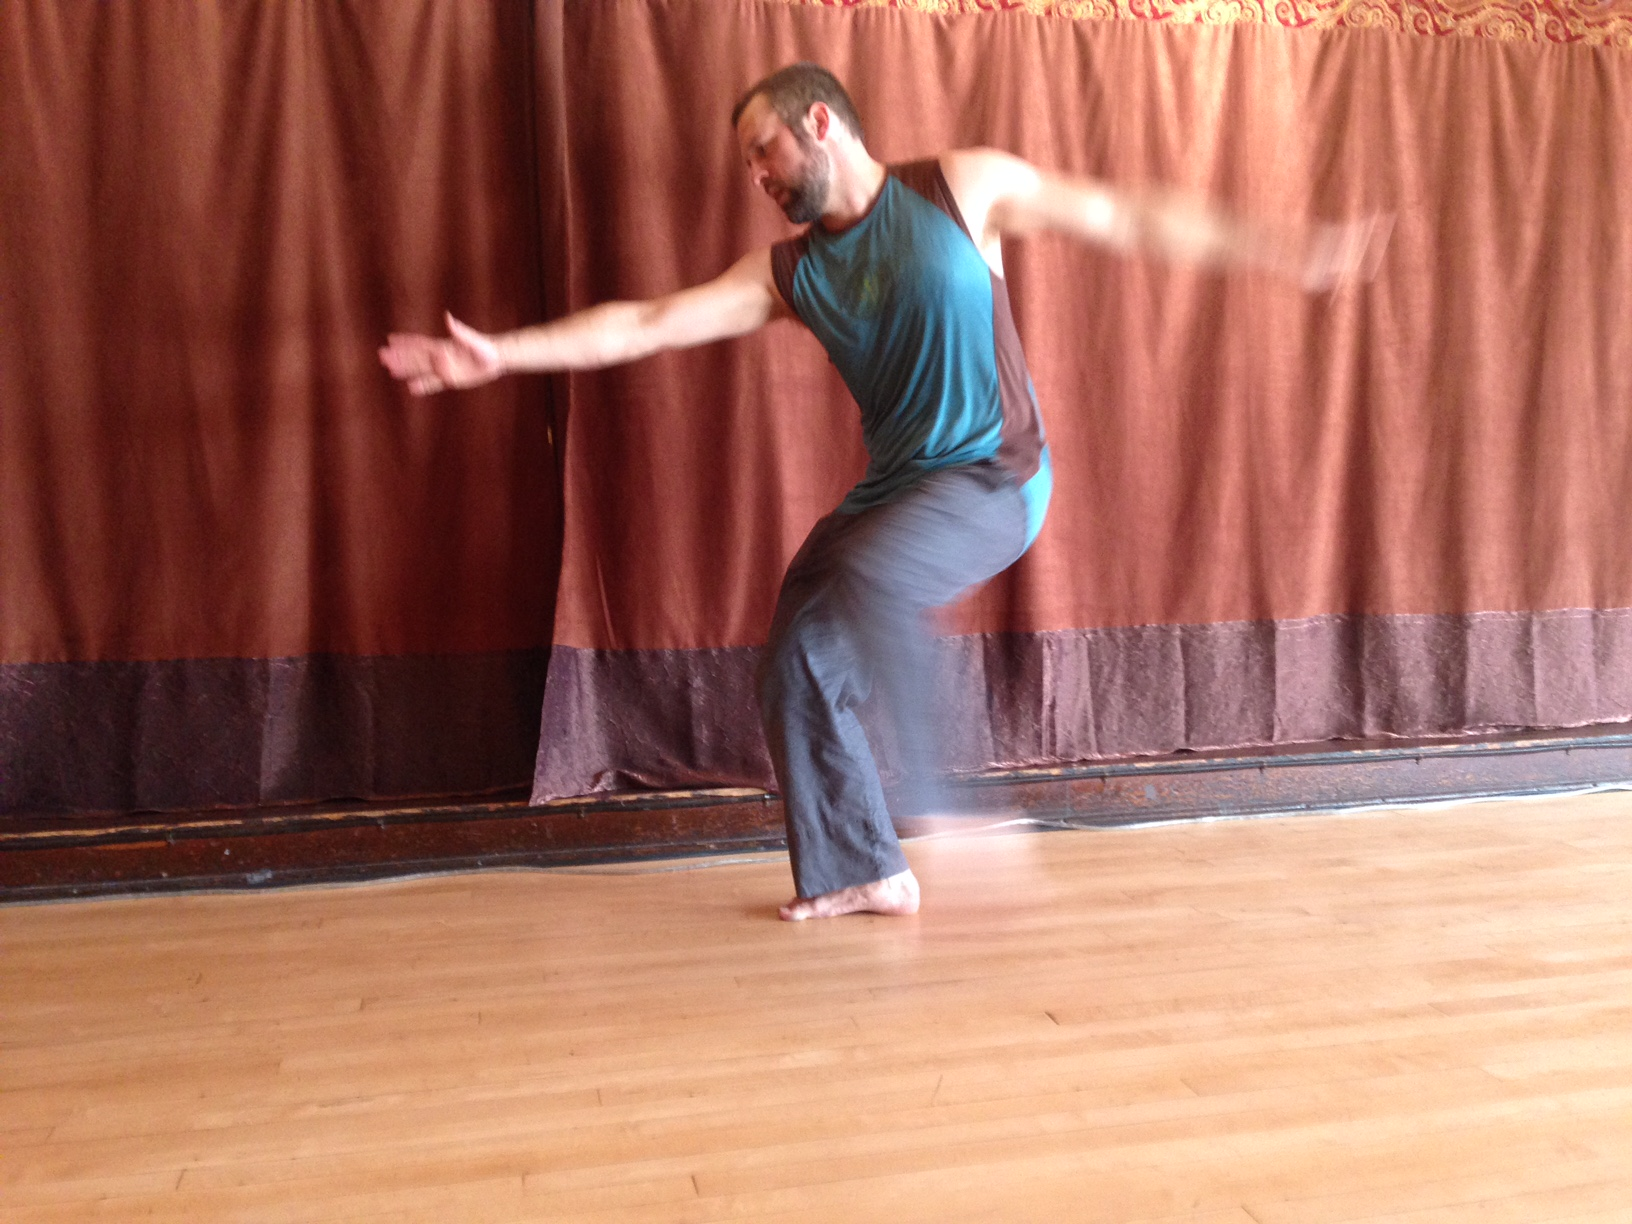 What is Conscious Dance? - Conscious dance is a term for a movement and dance practice that brings greater awareness and engagement of body, heart, mind, and soul.+ More